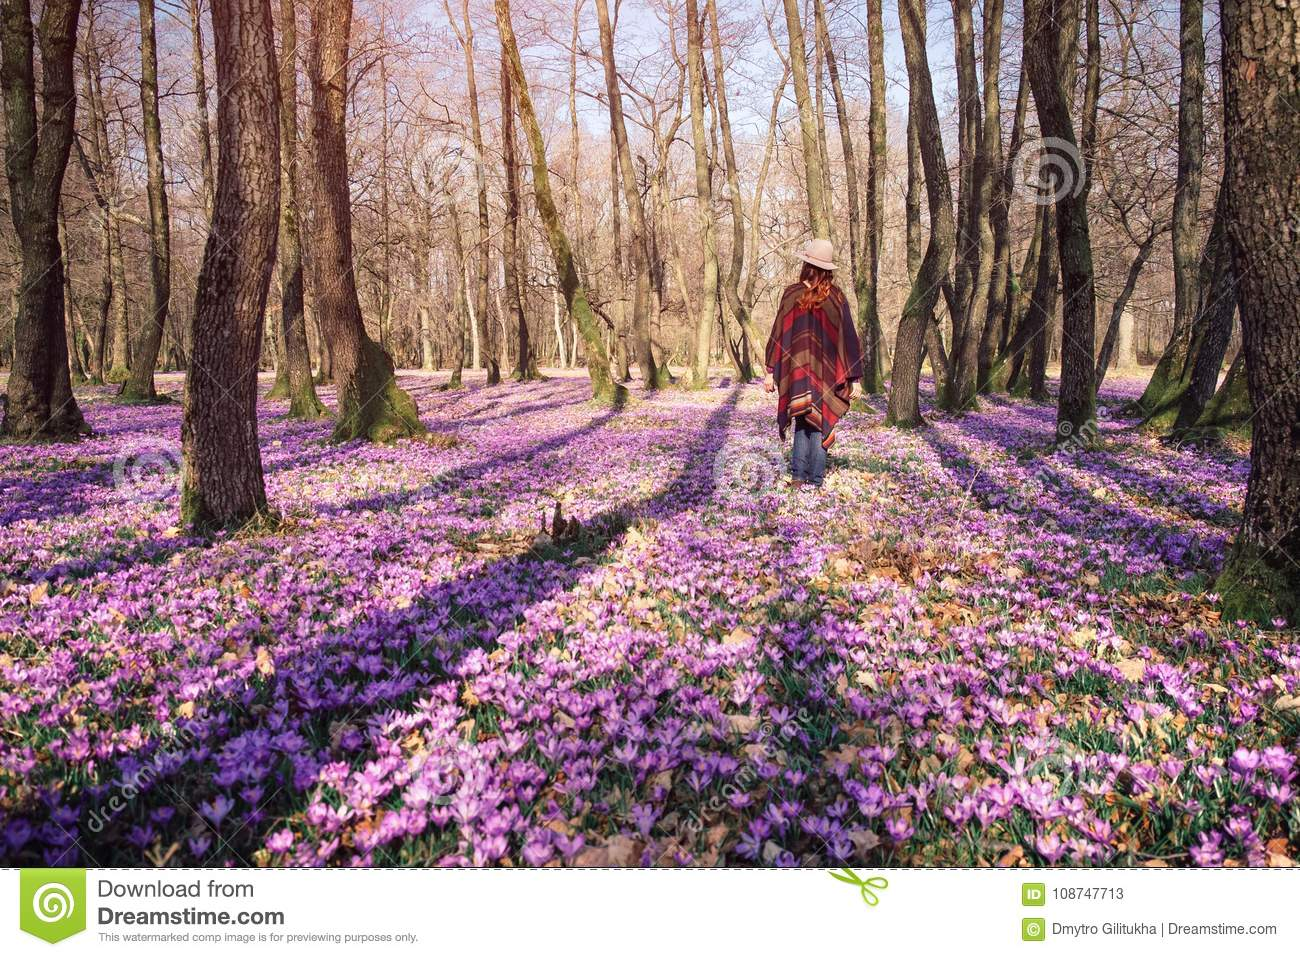 Blooming nature, crocuses, young traveler